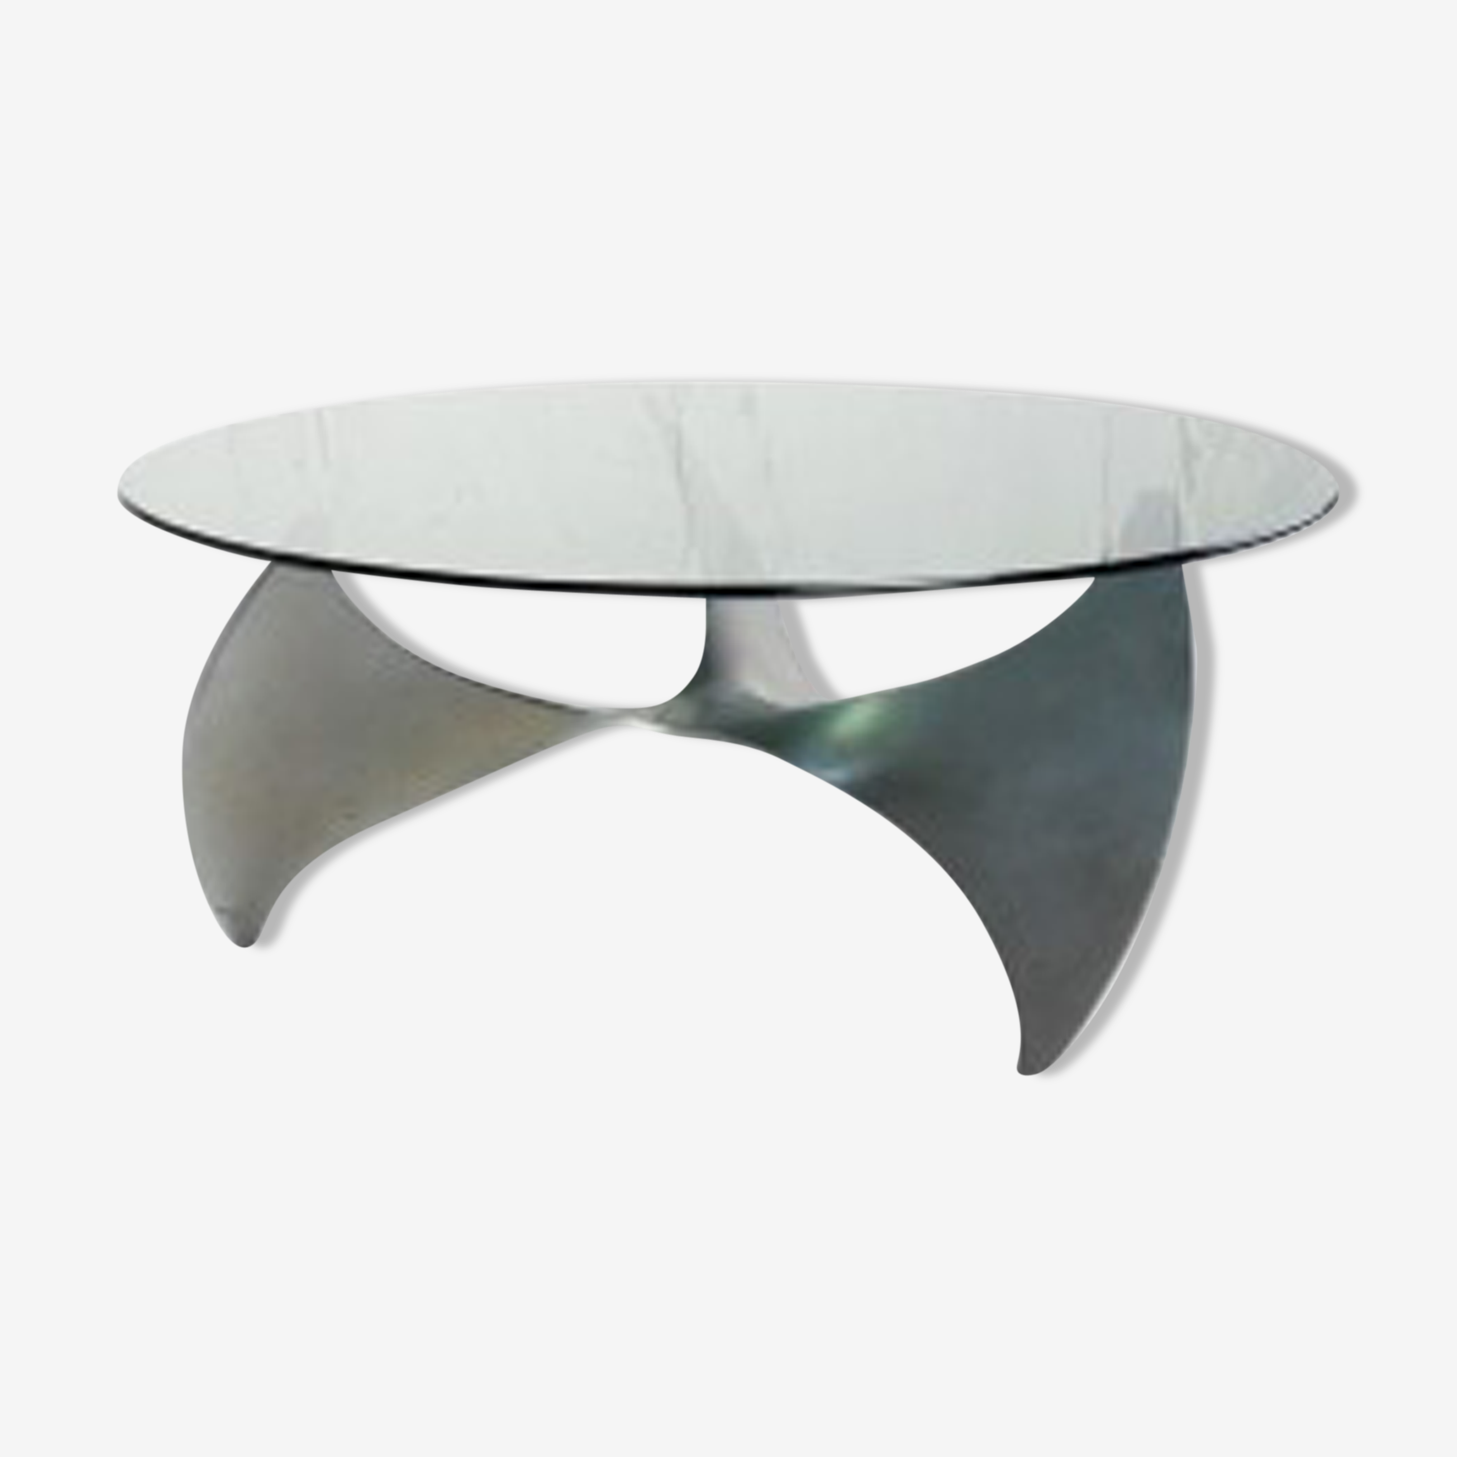 Coffee table Propeller by Knut Hesterberg